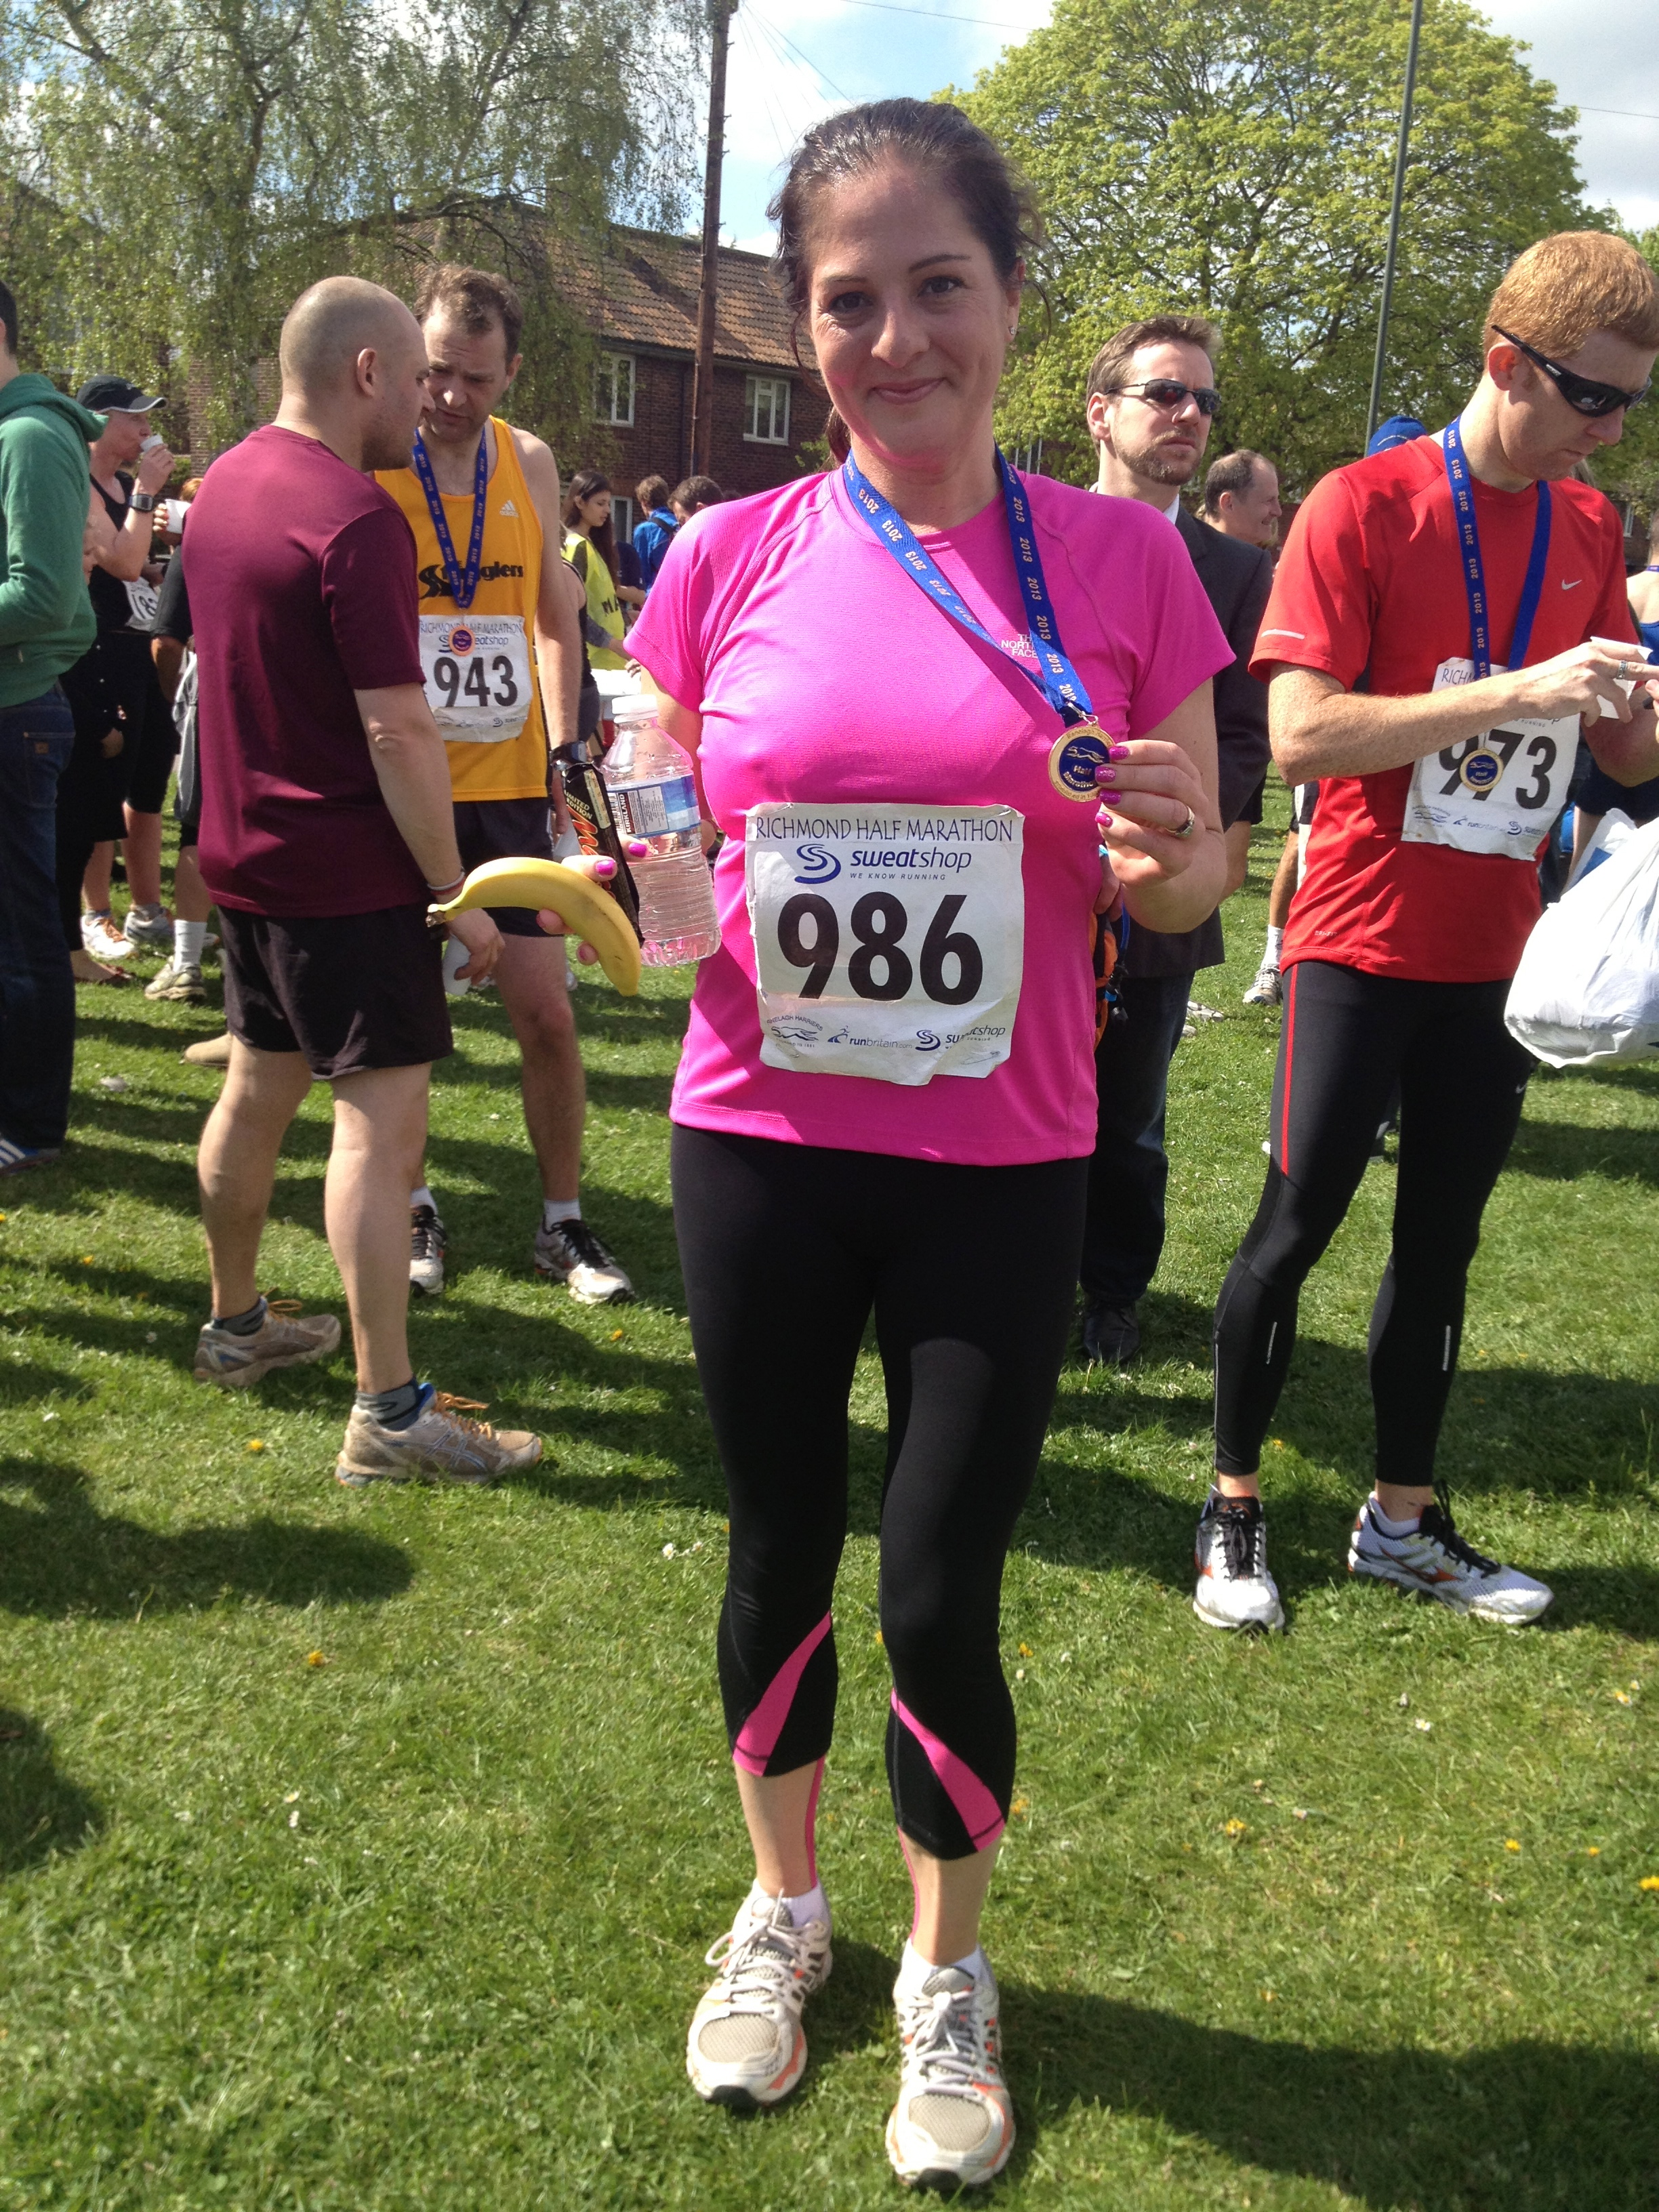 And on sunday I ran my first half marathon and loved it (even though I can hardly walk now). What a sense of achievement.